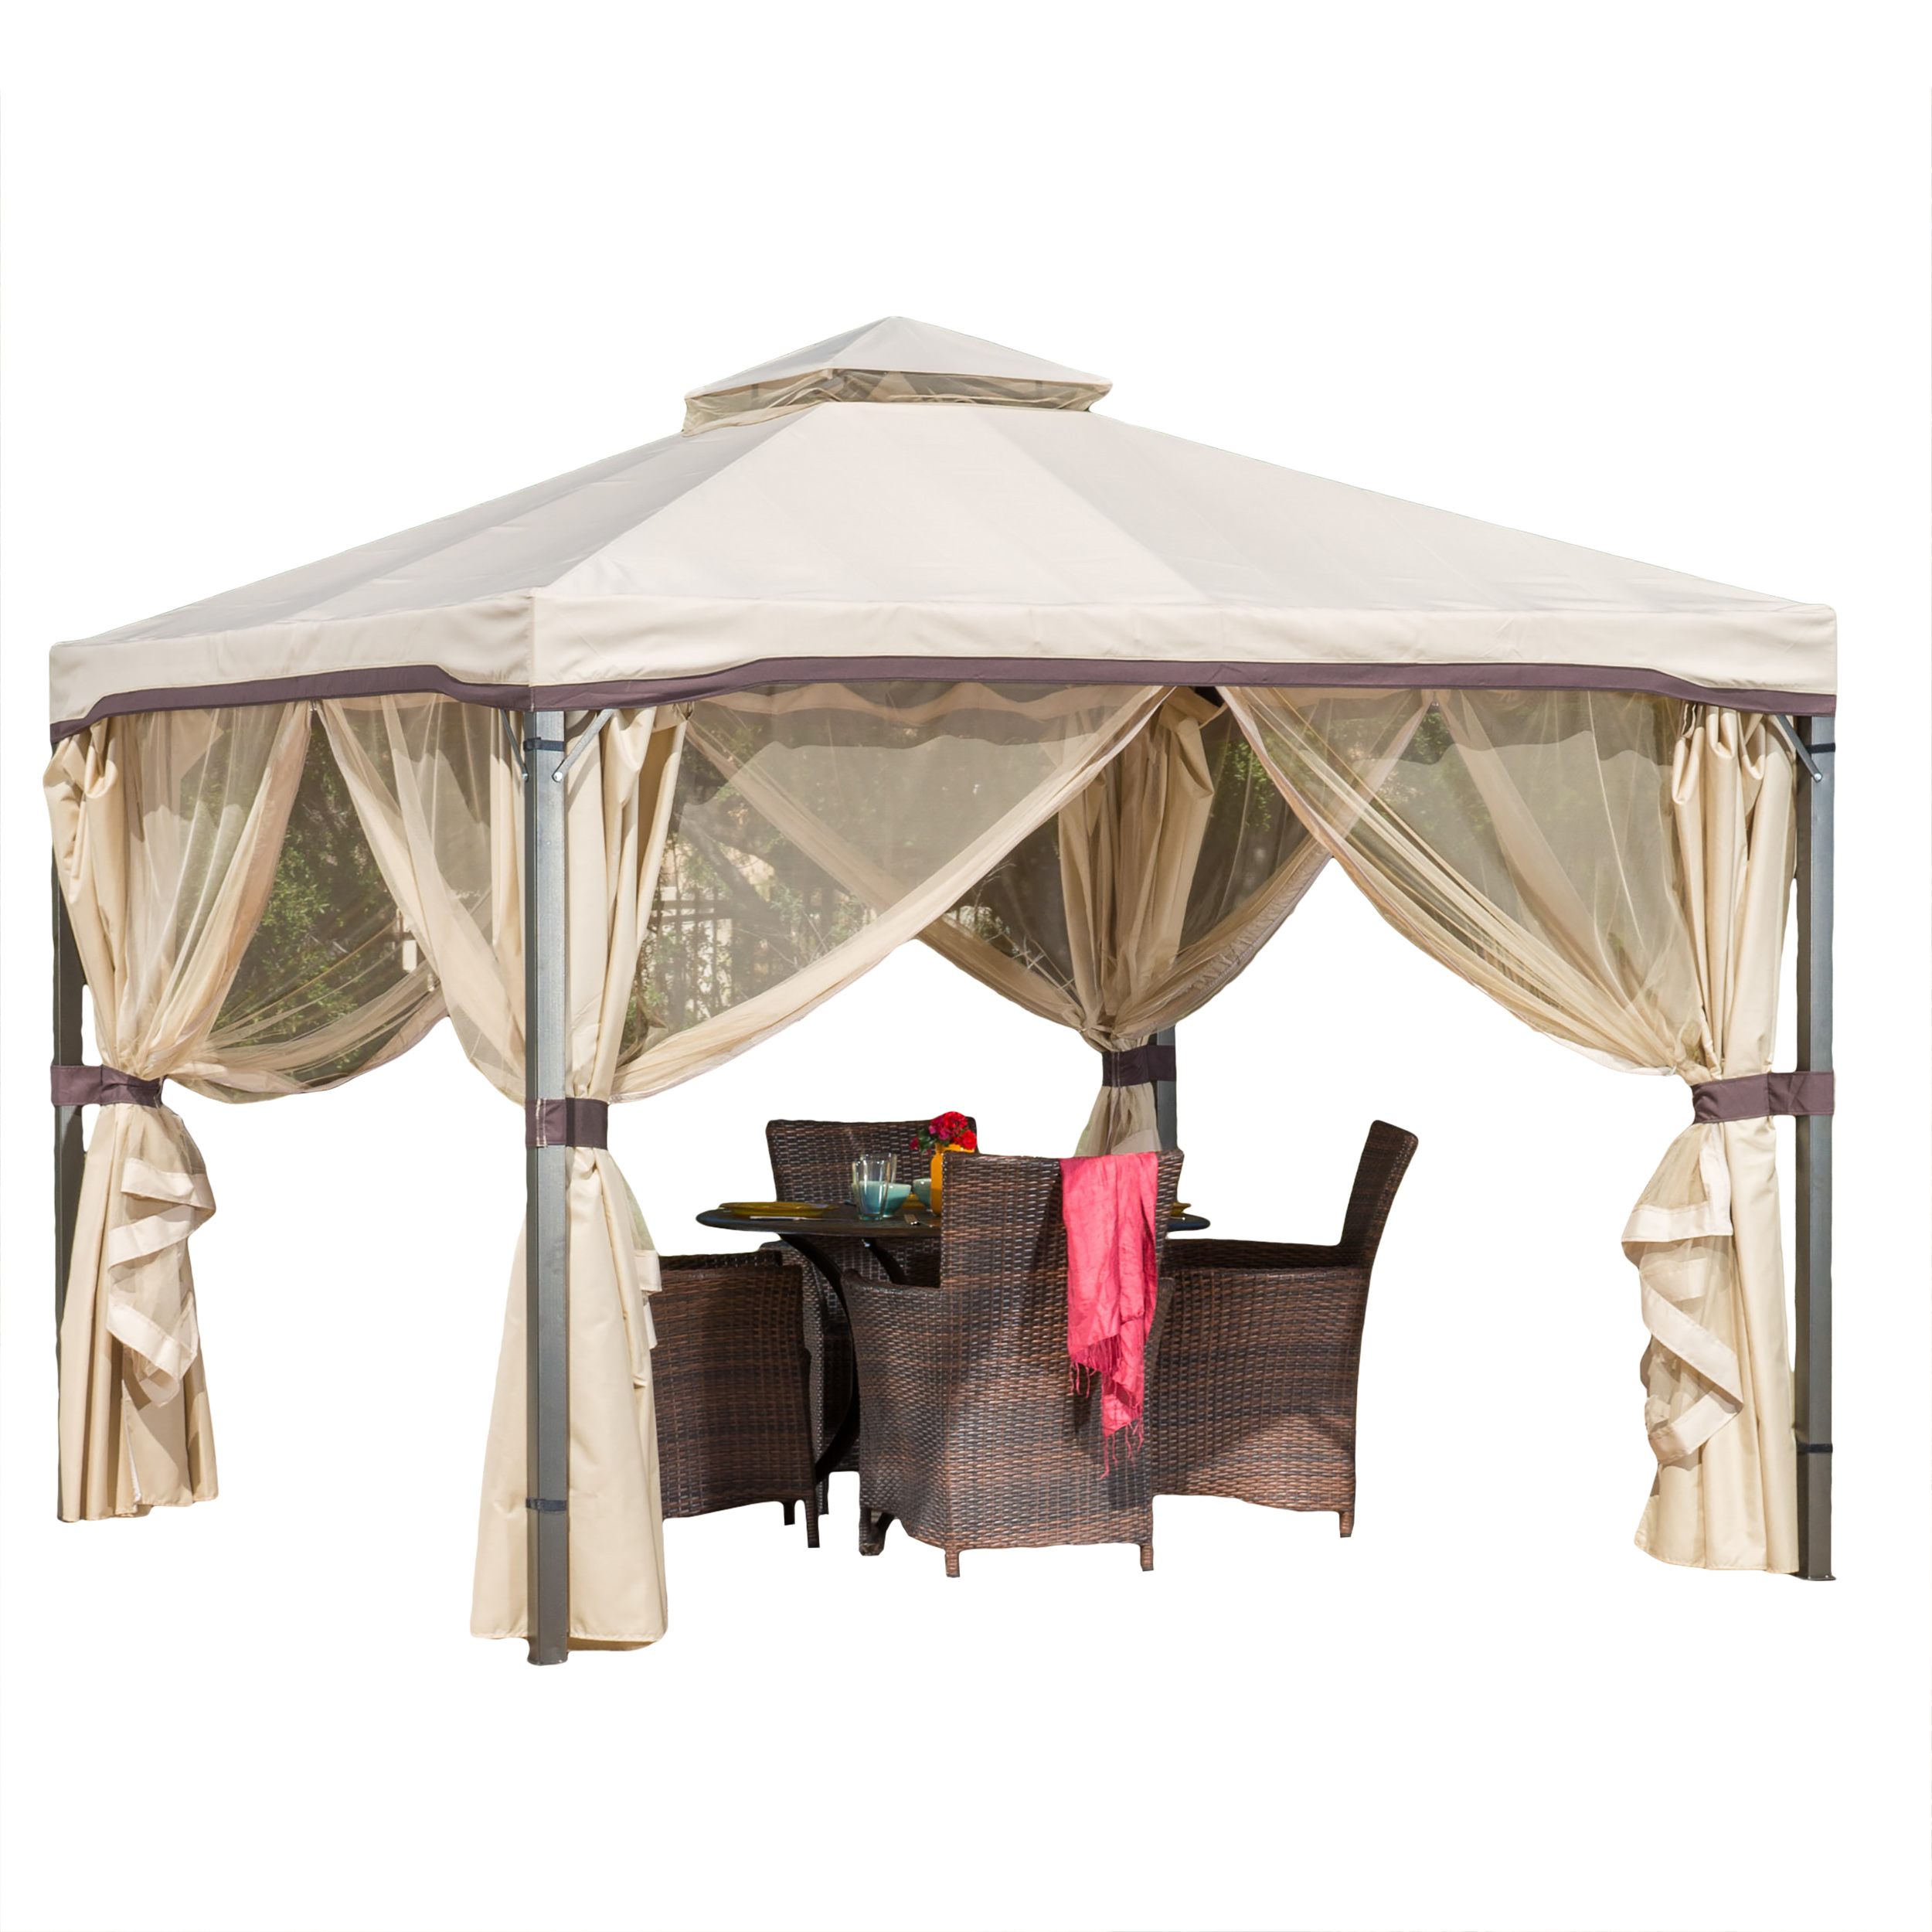 Sunset Beige Outdoor Gazebo Canopy by NFusion